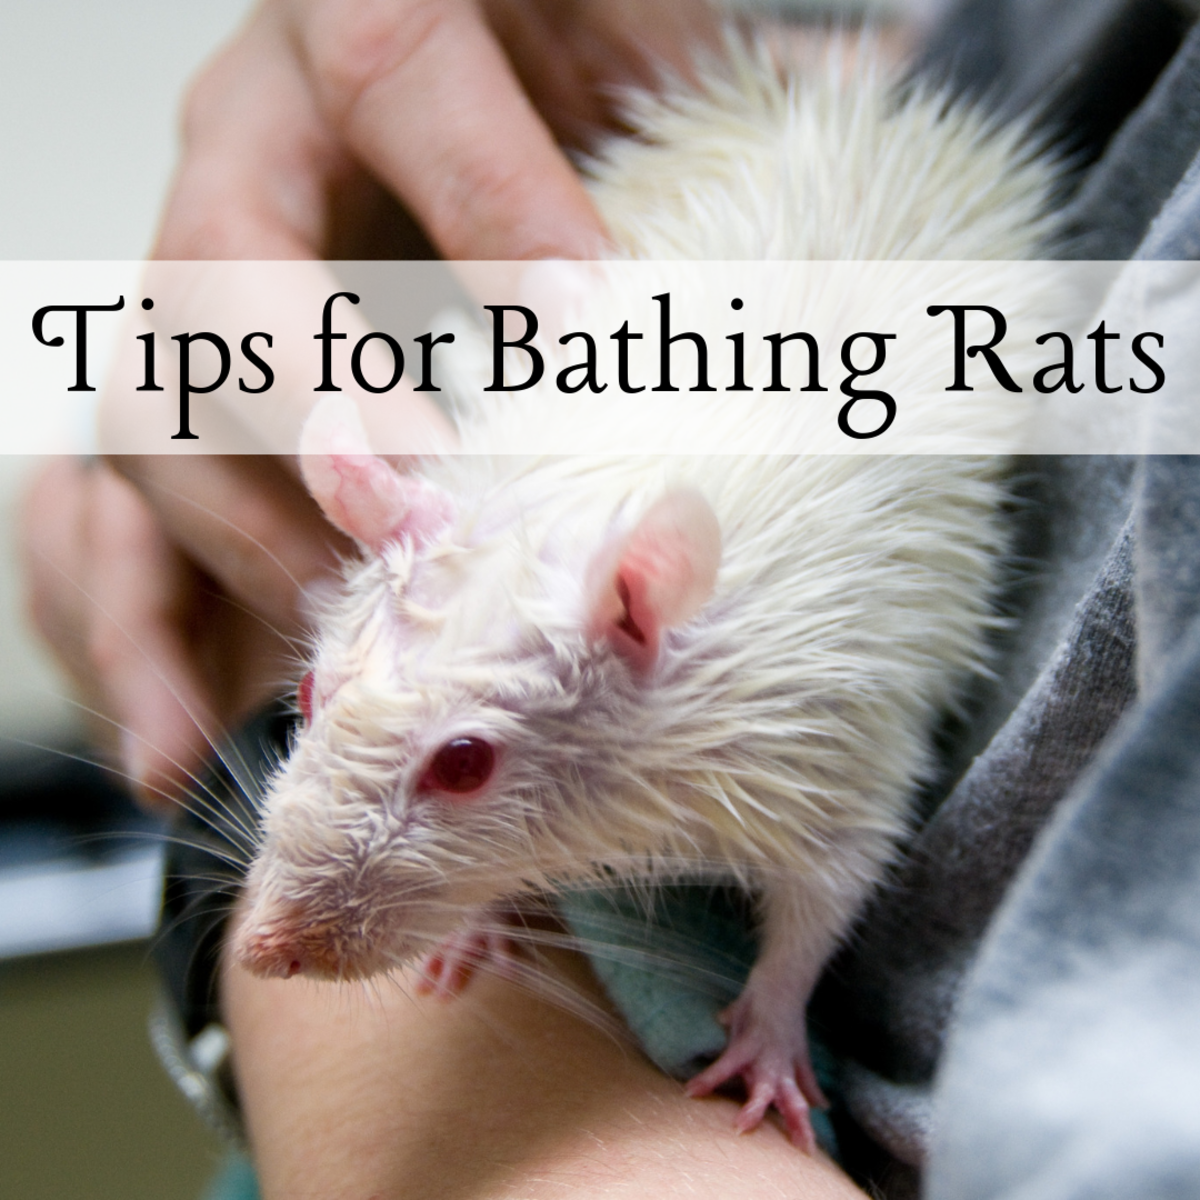 How to Bathe Your Pet Rat Without Stress